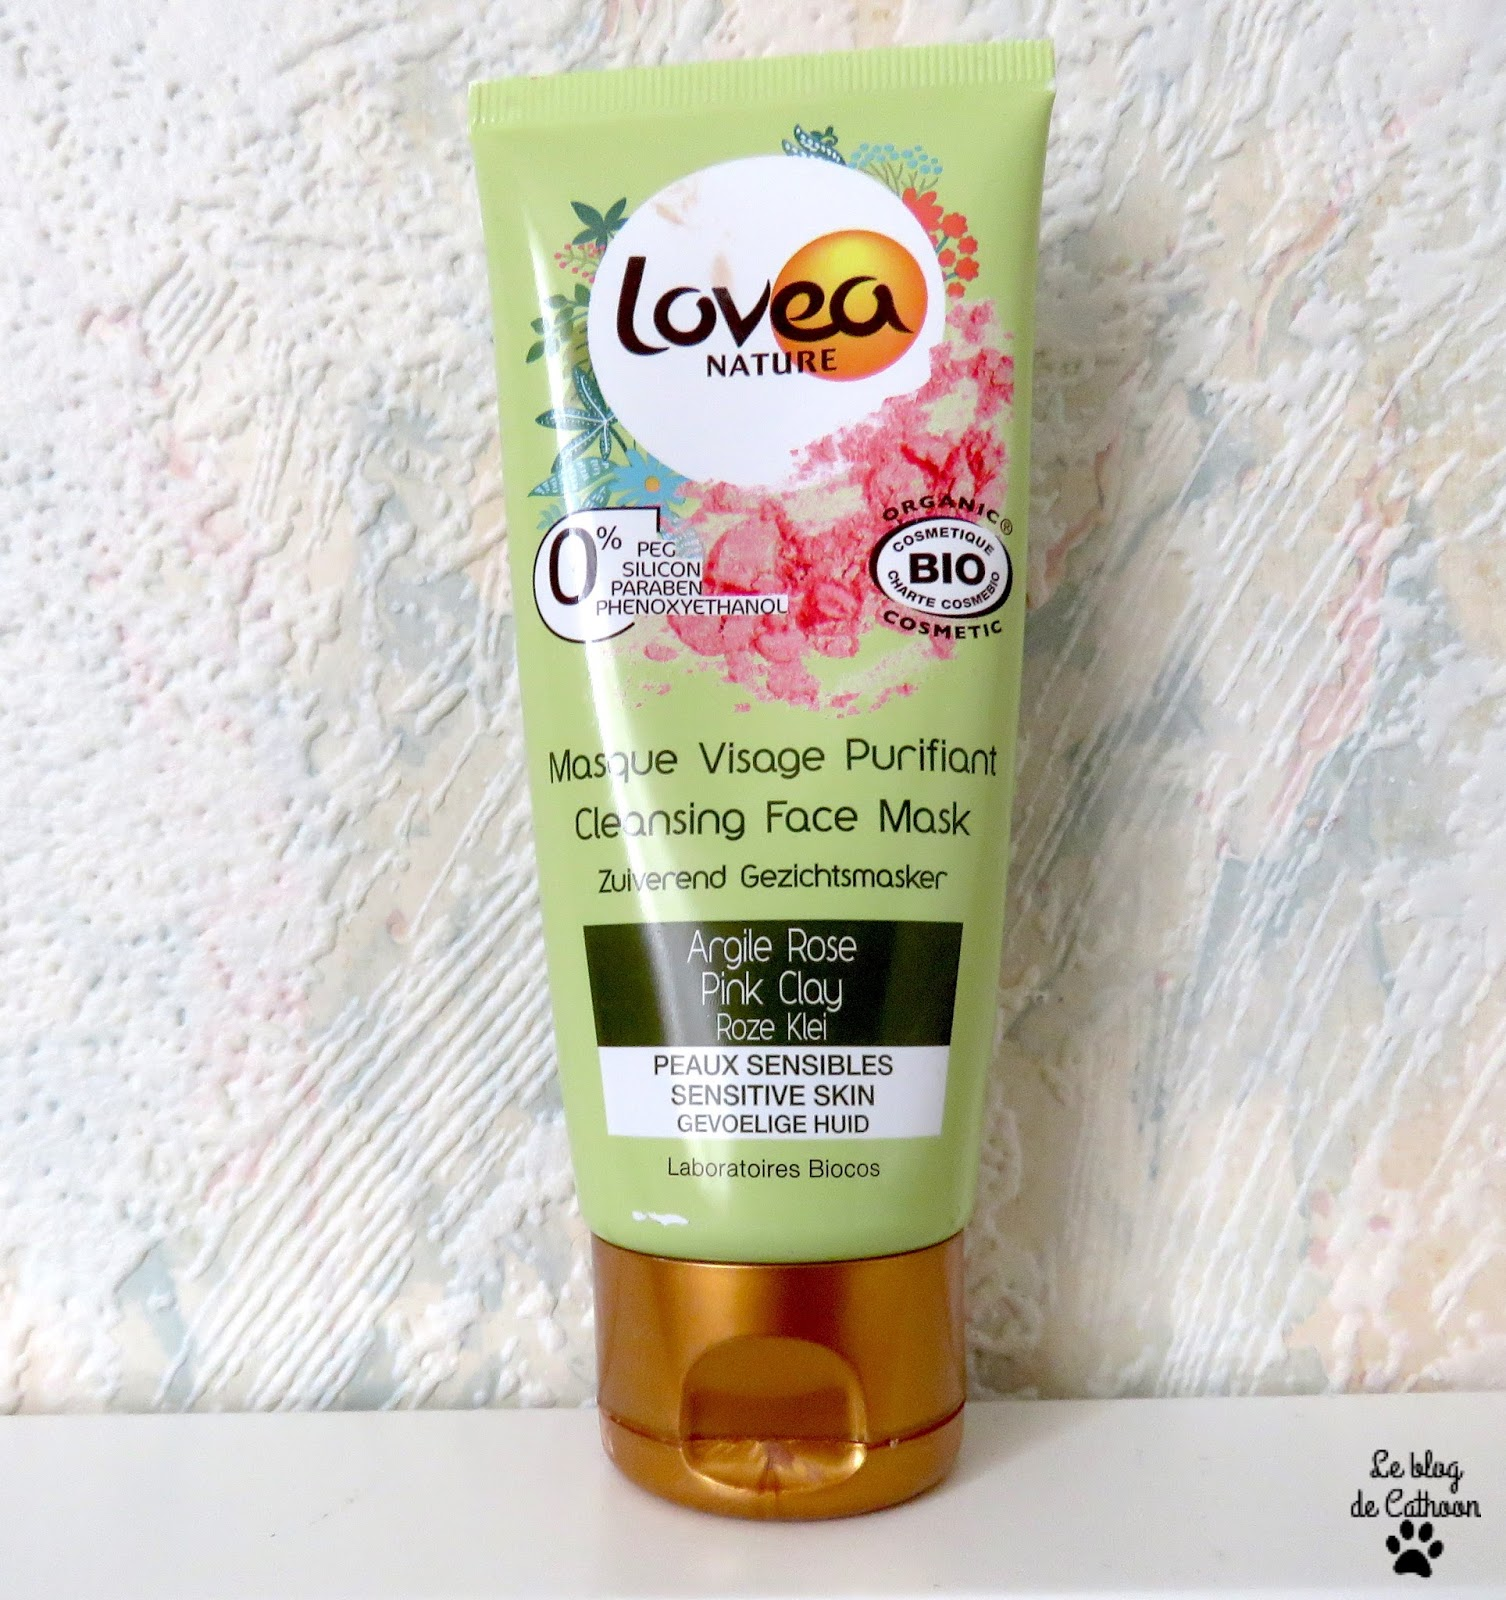 Lovea Nature Masque Visage Purifiant à l'Argile Rose